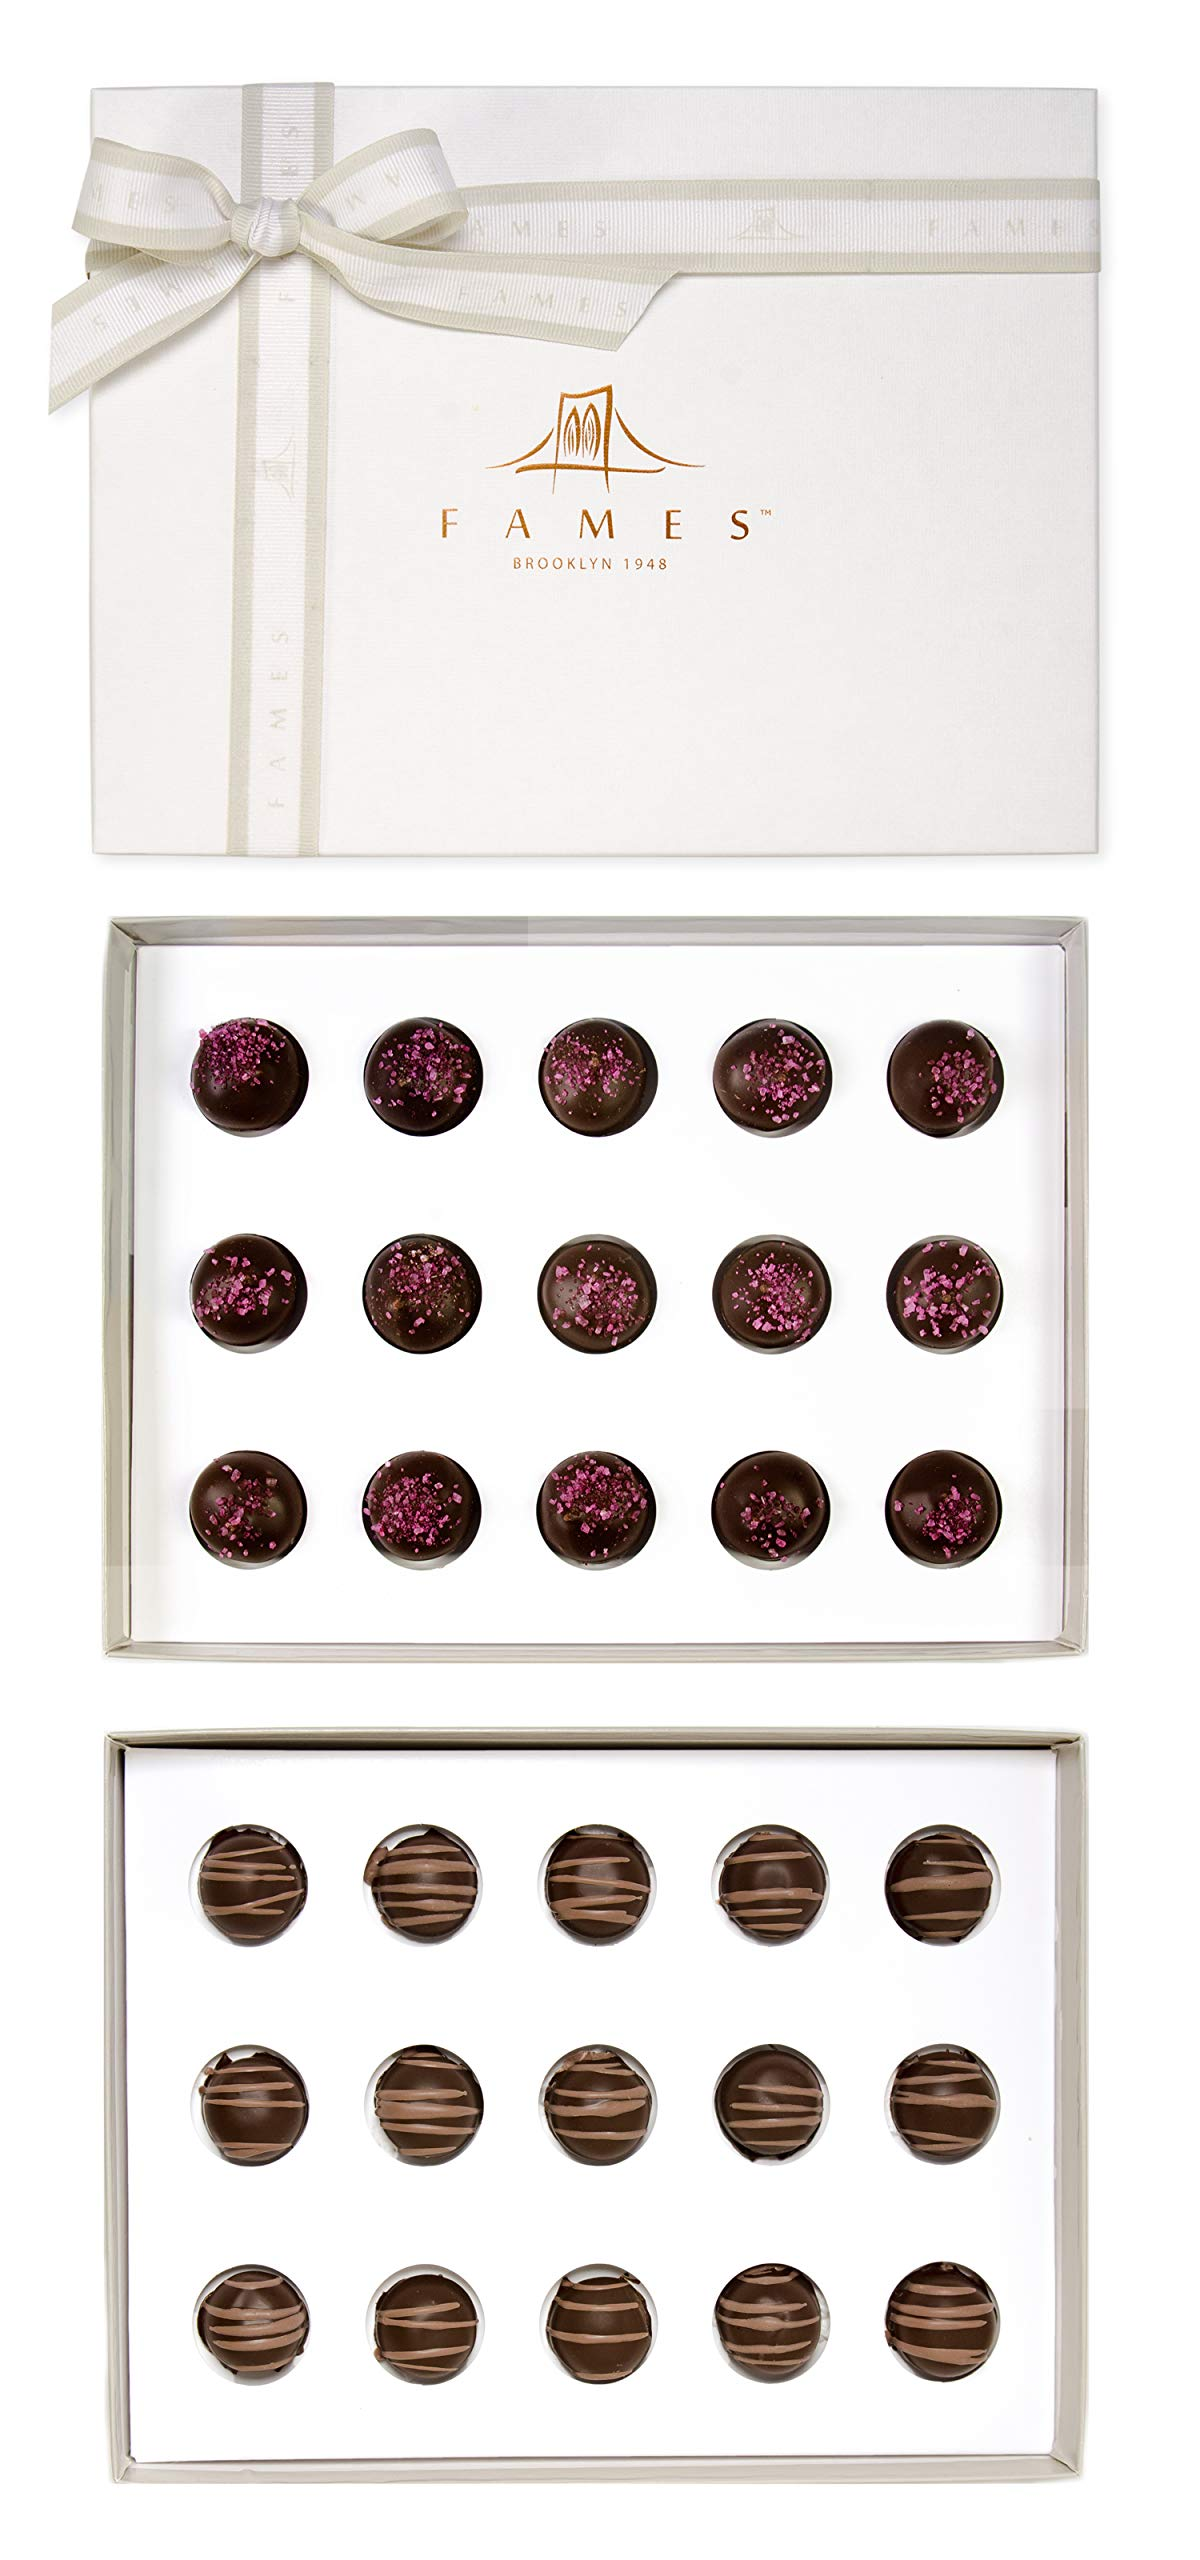 CDM product Chocolates For Gifting Gift Boxes - Gourmet Truffle, Berry swirl Chocolate boxes big image